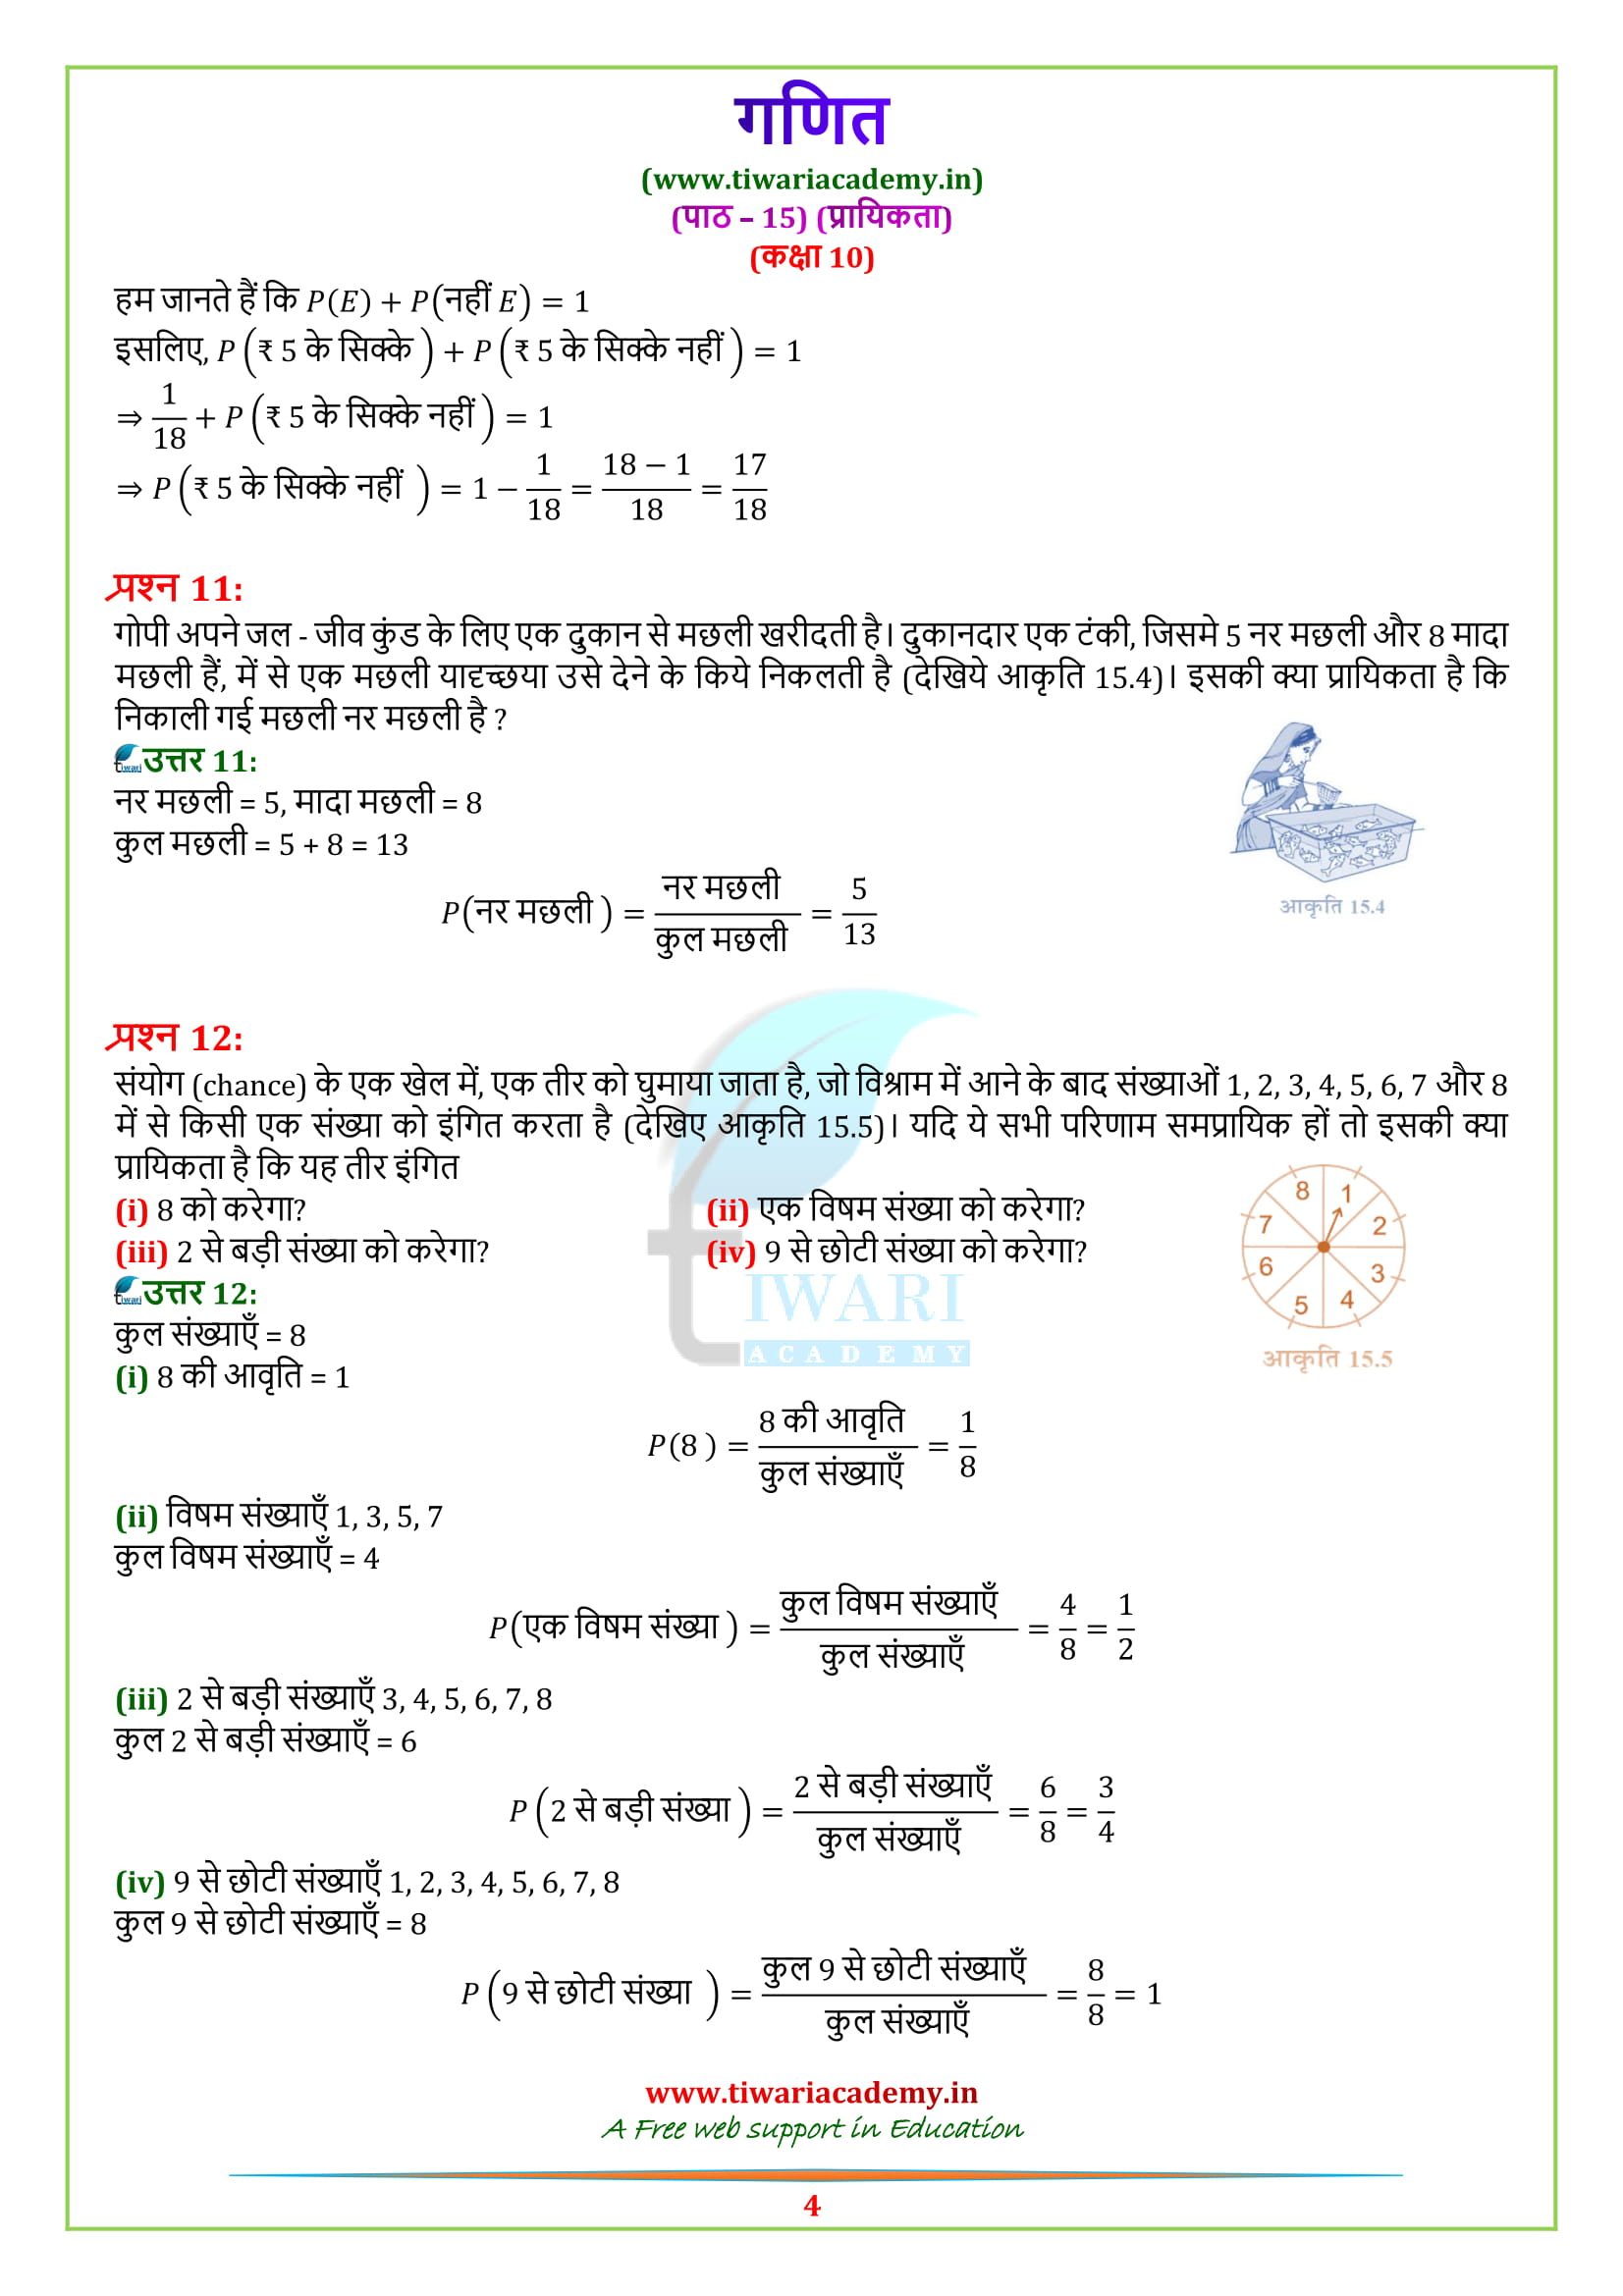 10 Maths prashnavali 15.1 hindi me